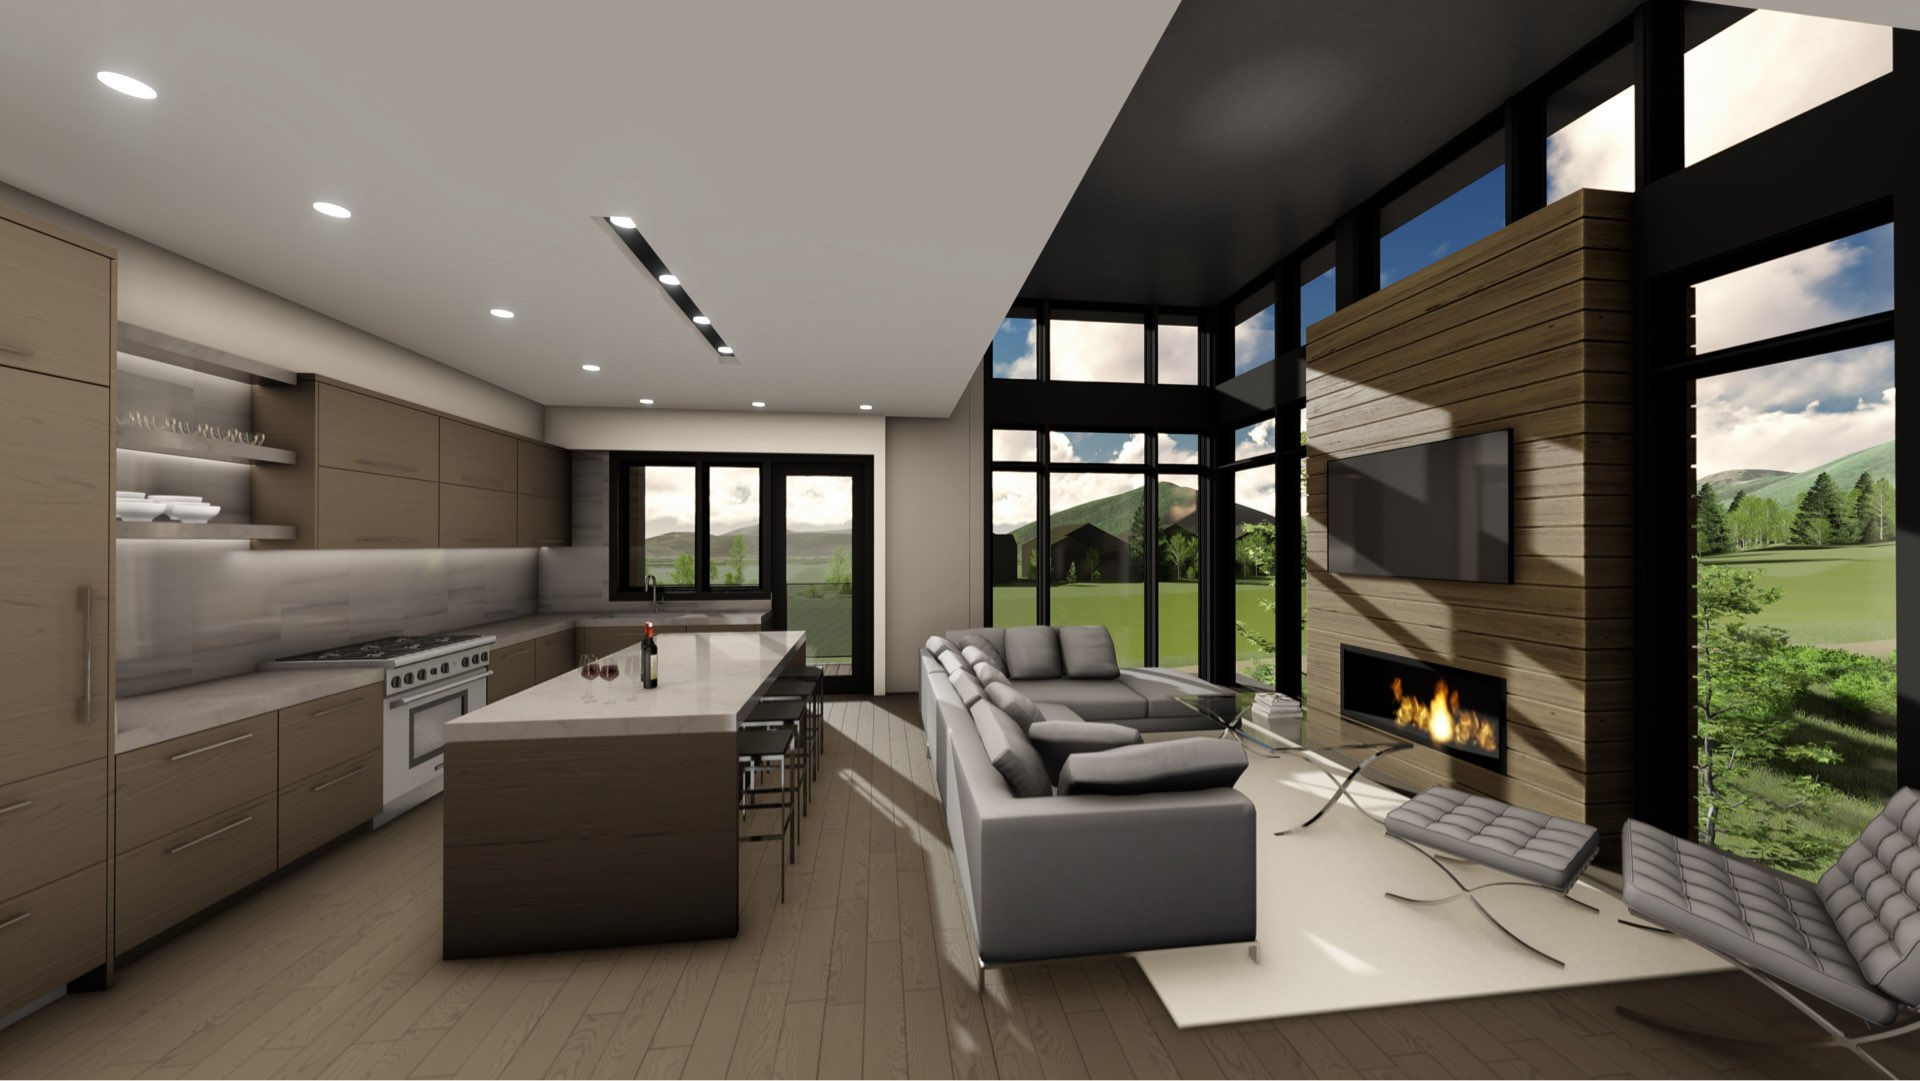 Living room and kitchen rendering of Viridian Townhomes at Canyons Village in Park City, Utah, architectural design by Elliott Workgroup